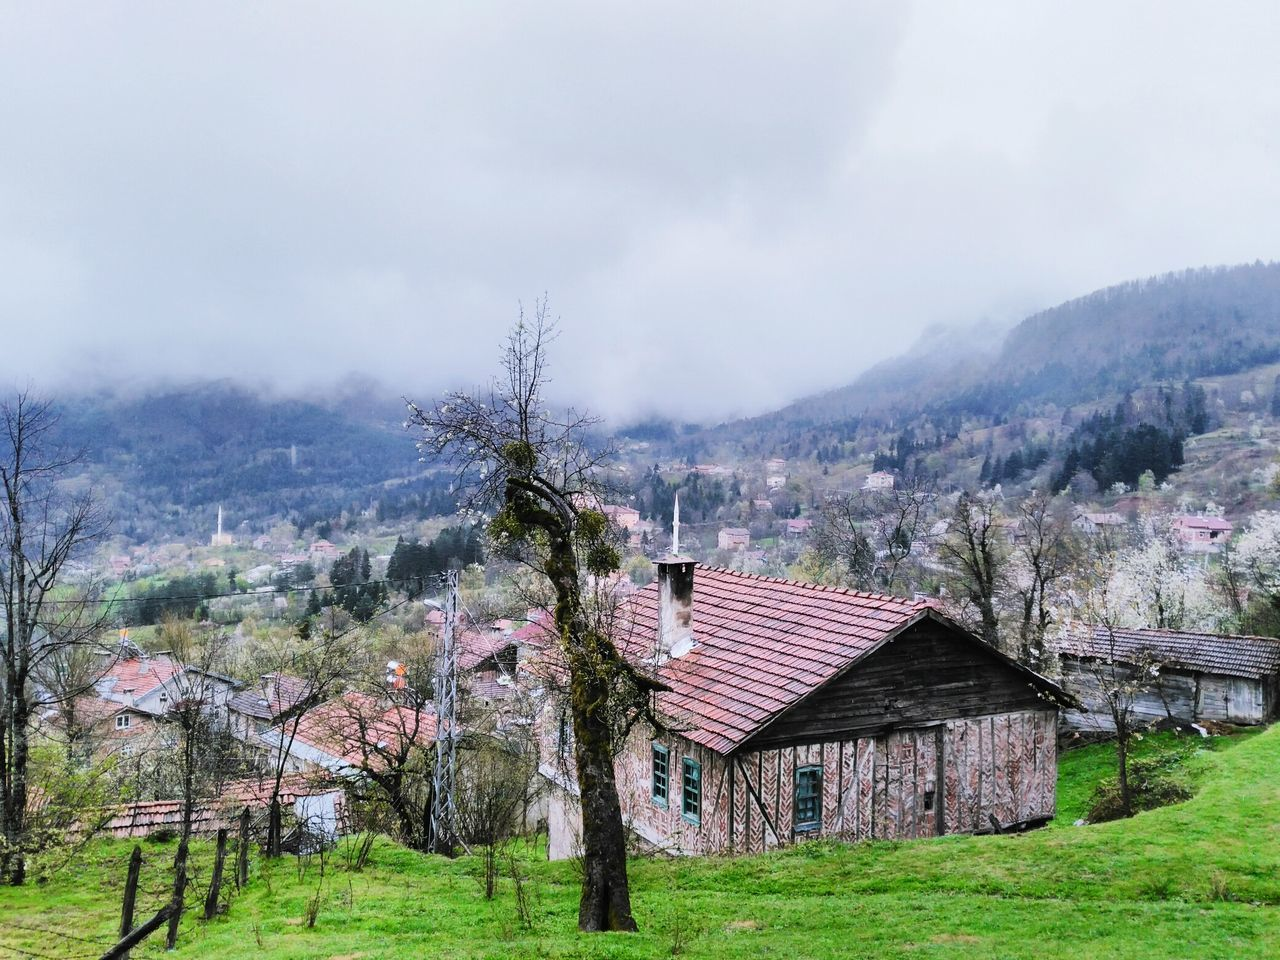 architecture, built structure, tree, no people, mountain, day, beauty in nature, nature, house, building exterior, sky, outdoors, scenics, tranquility, landscape, grass